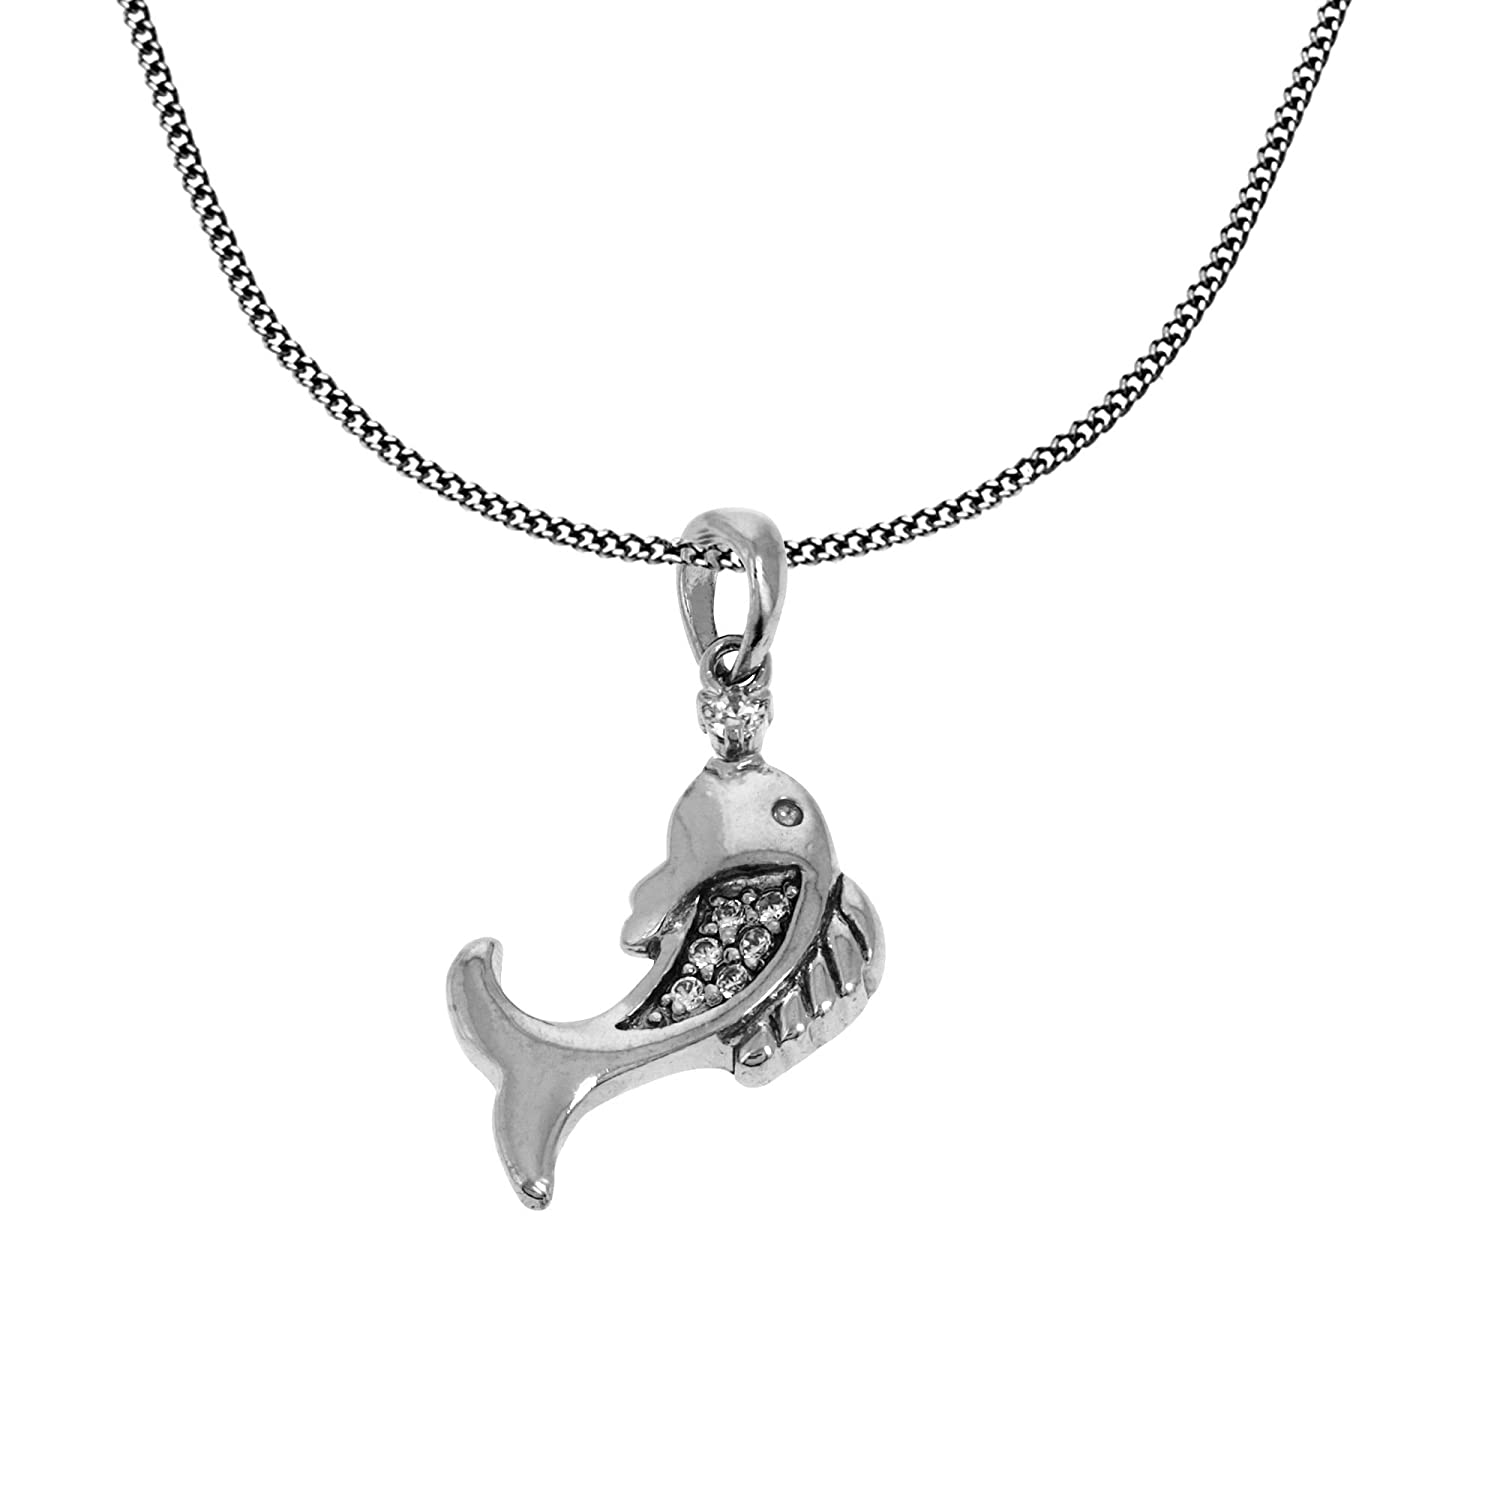 Indian Handmade Fish Charm Micro Pave Pendant Chain Silver Jewelry Birthday Gifts For Her